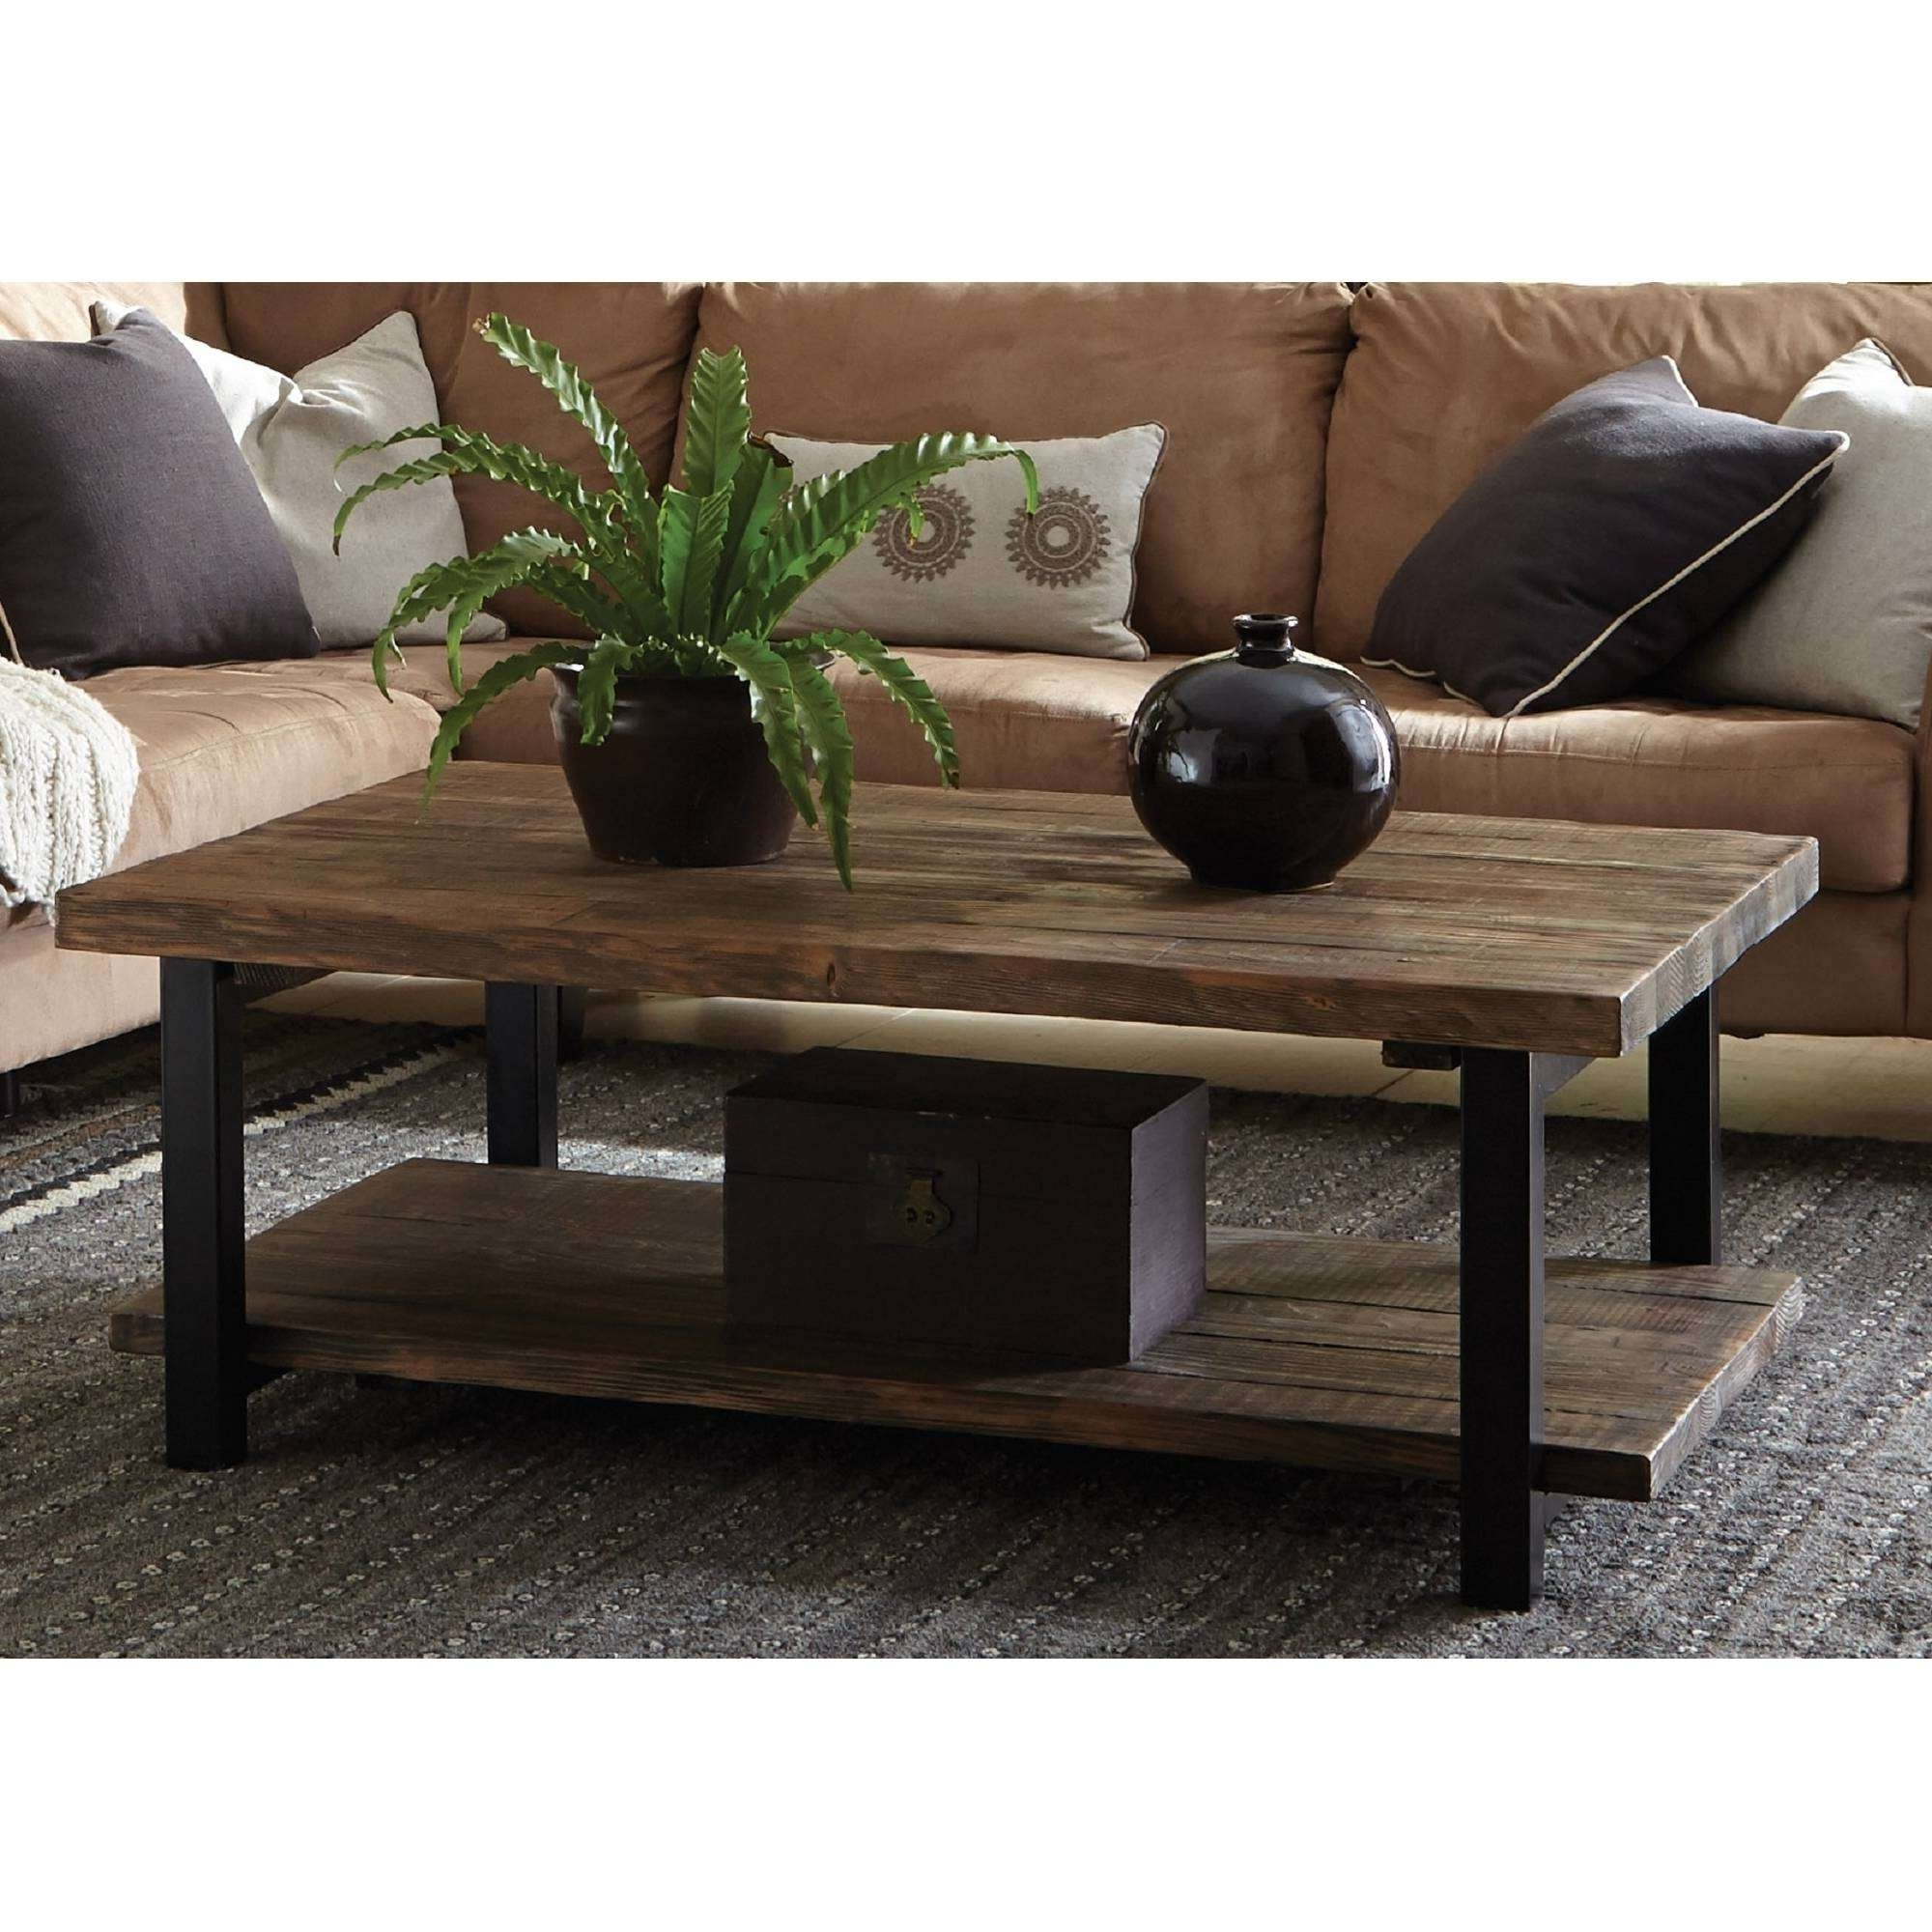 Well Liked Dark Wood Chest Coffee Tables Pertaining To Coffee Table : Magnificent Vintage Coffee Table Black Wood Coffee (View 19 of 20)